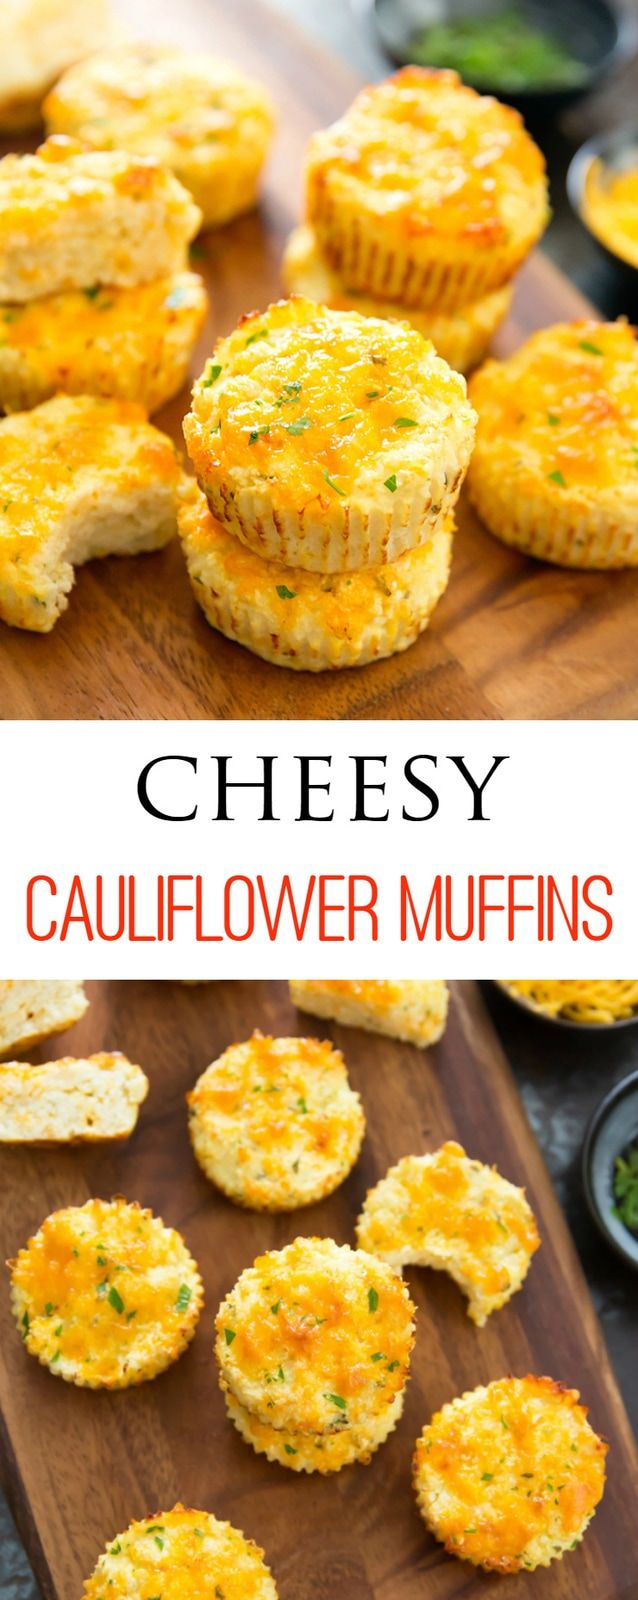 e8ea8a7480fc462db097ca96fd529d6d Tacky Cauliflower Muffins. Low carb, gluten free and simple. No must dry out t...